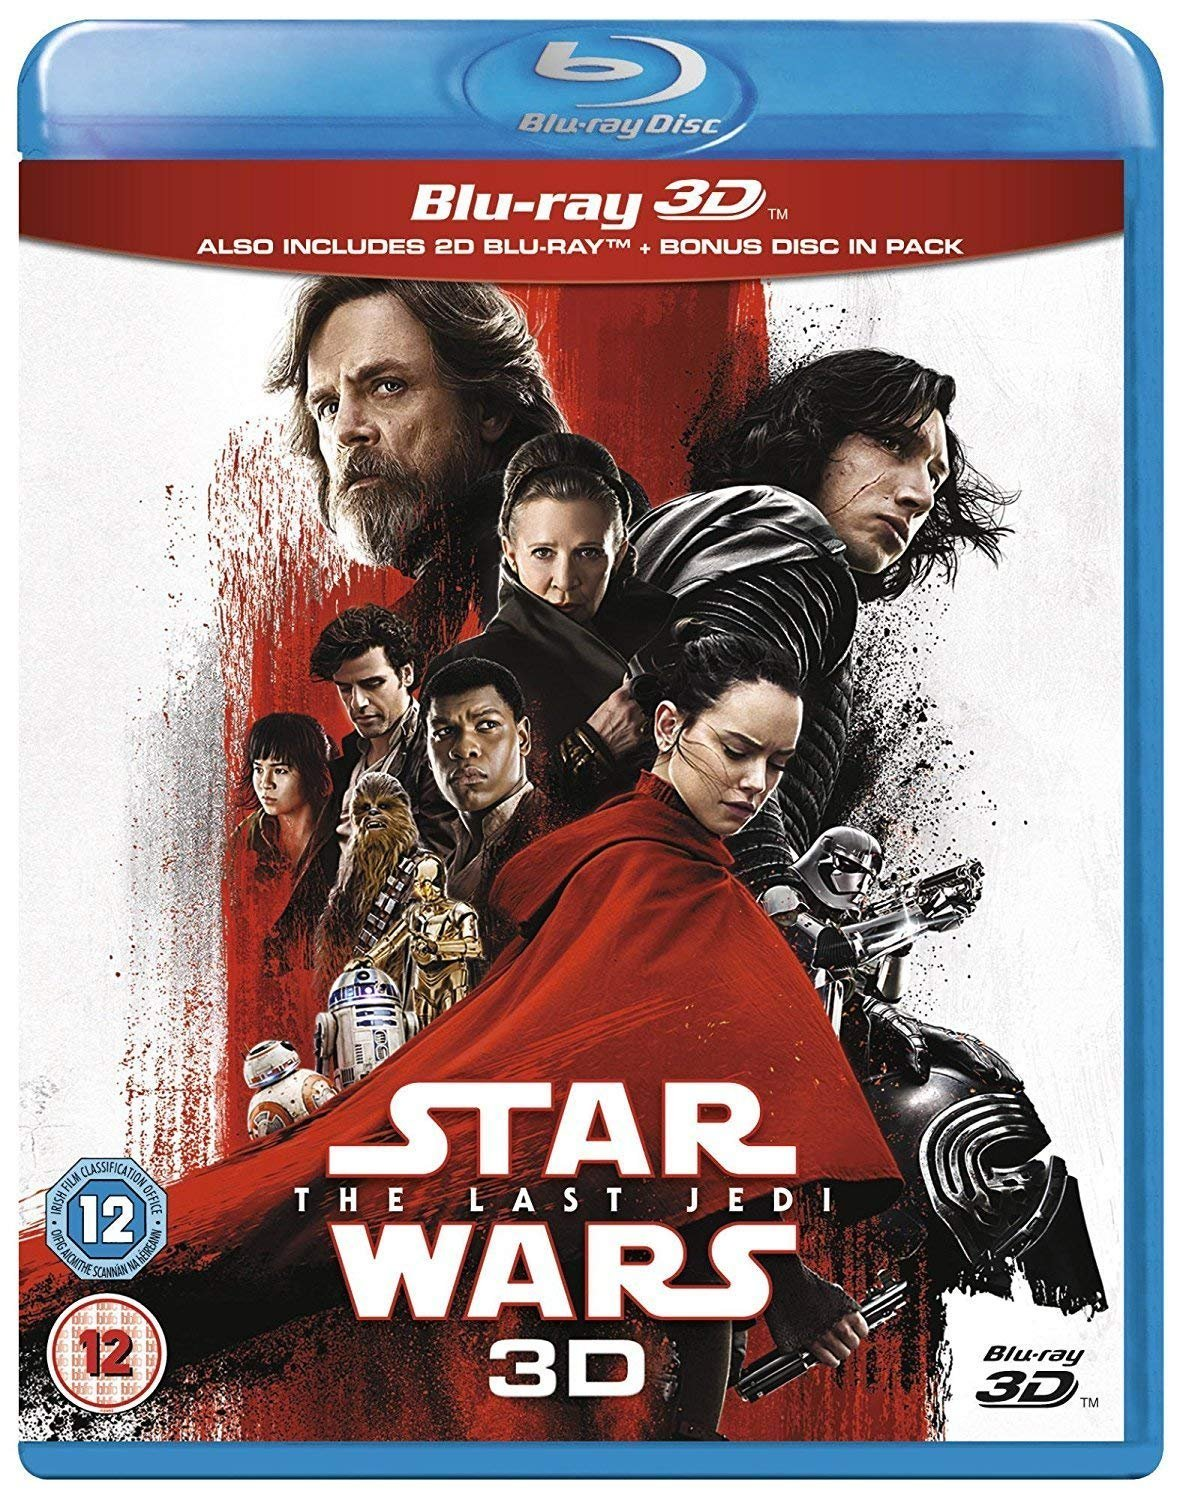 Star Wars: The Last Jedi 2017  Region Free